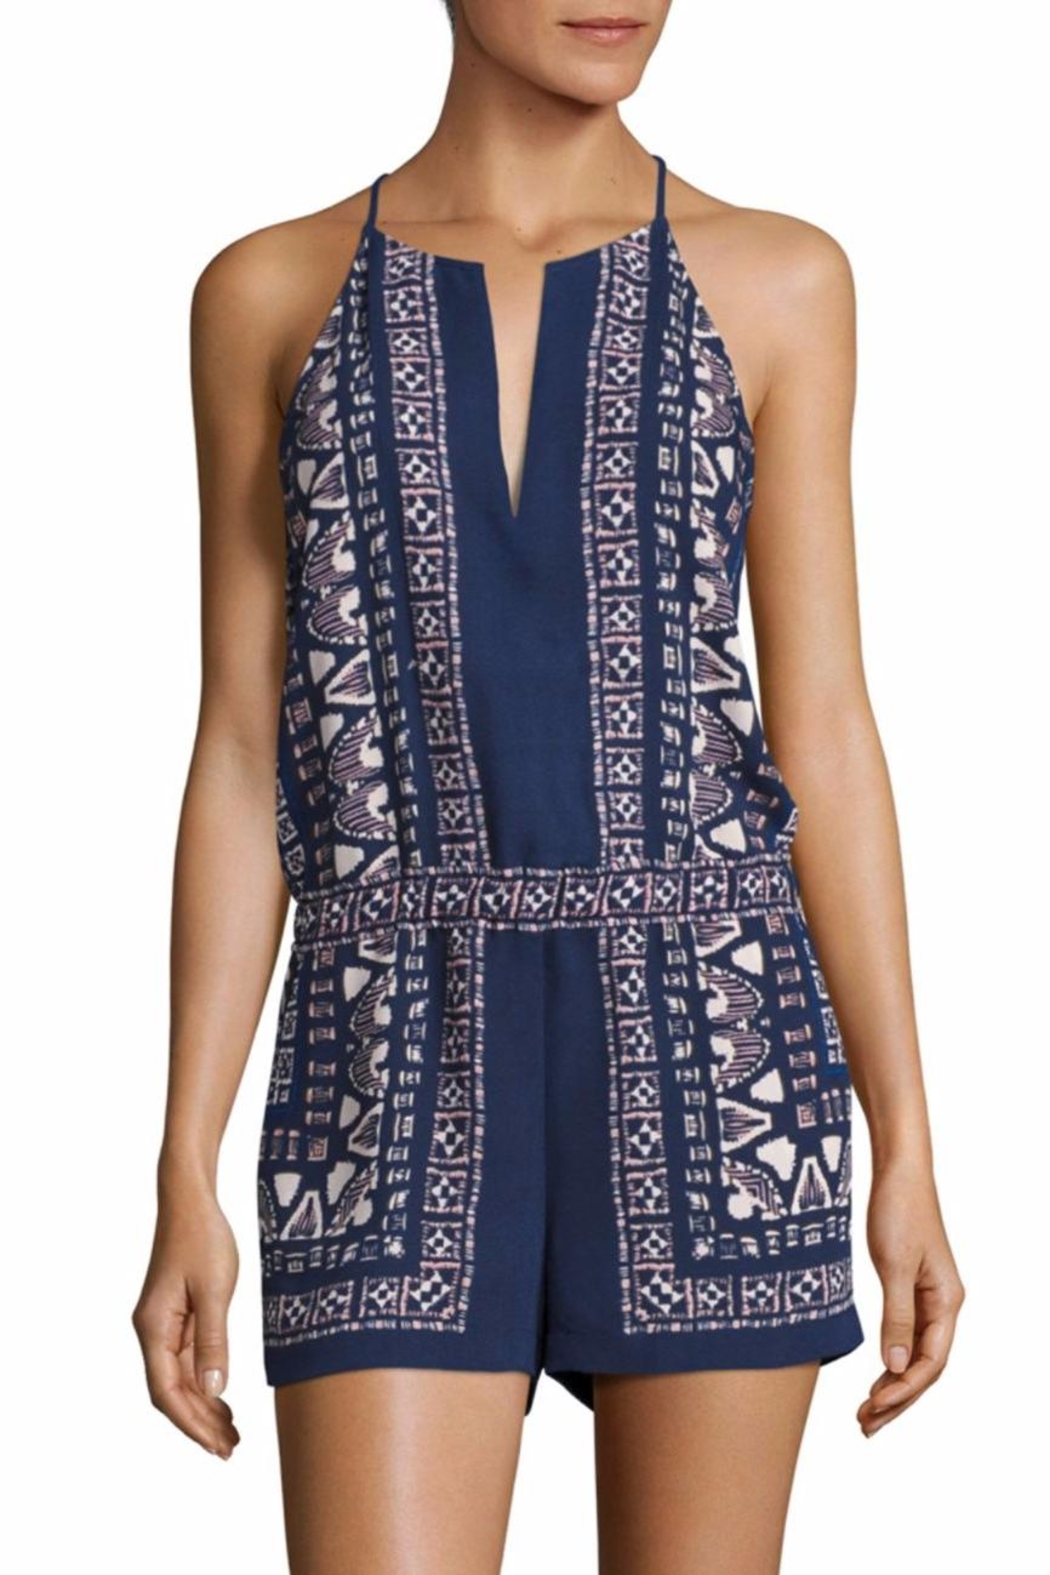 50b5c4afe BCBG Max Azria Tyra Scarf Print Romper from Texas by Queen Bee ...